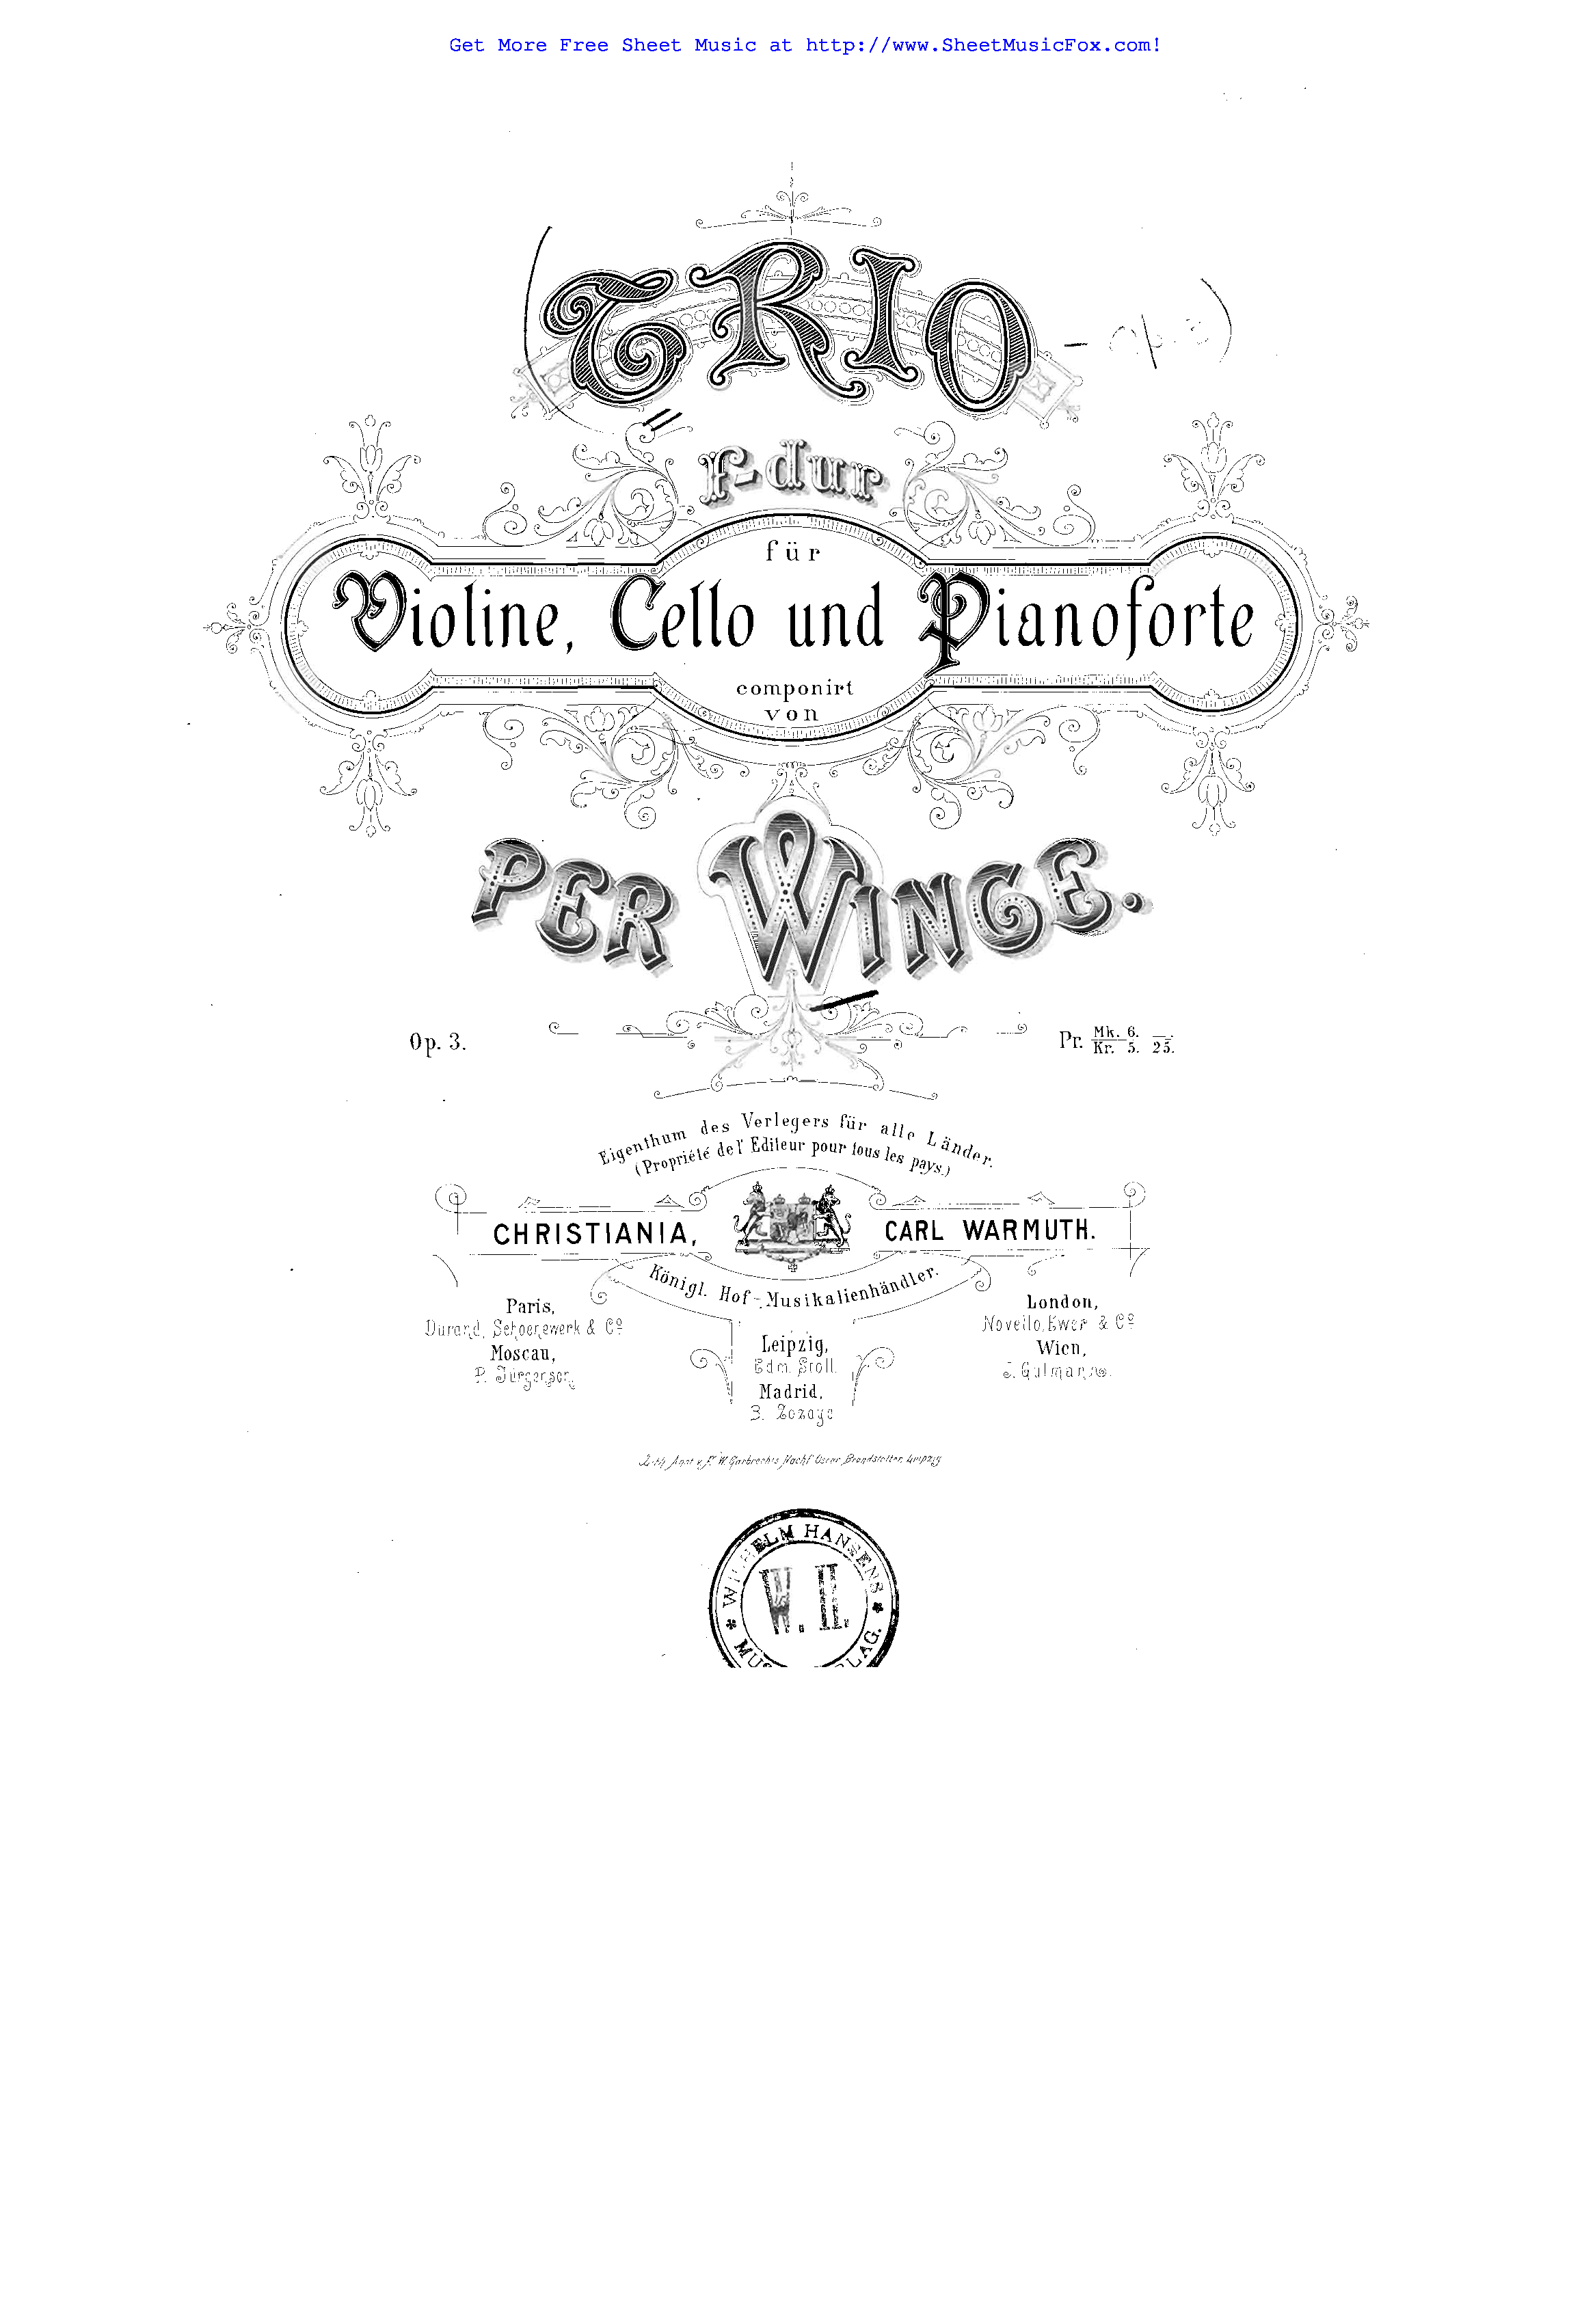 Free sheet music for Piano Trio, Op.3 (Winge, Per) by Per